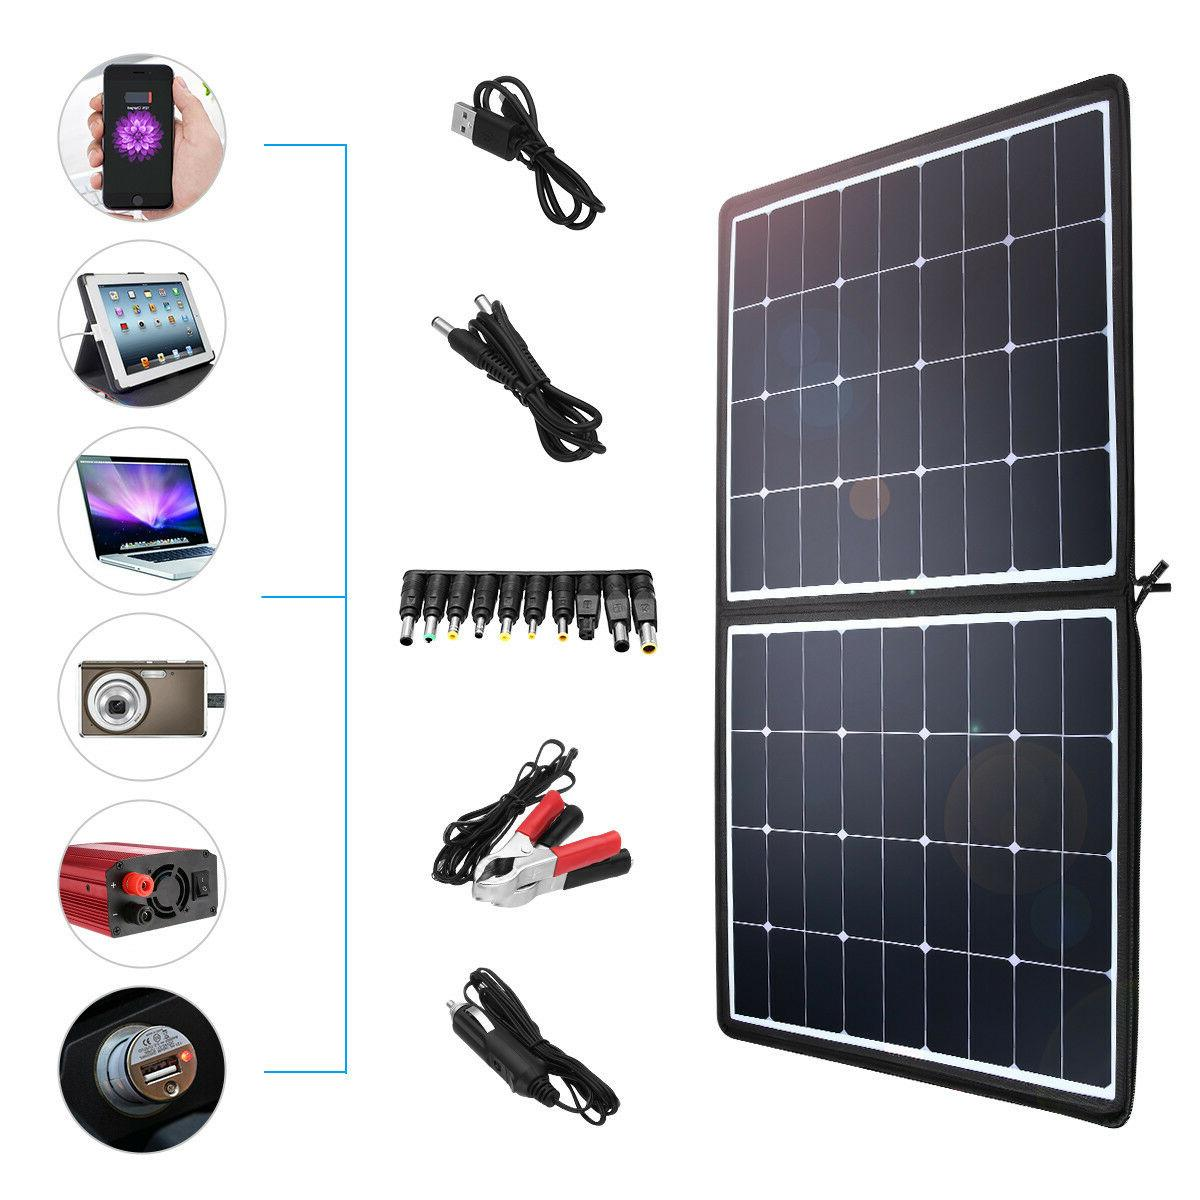 Poweradd 18V Foldable Panel Charger for Home